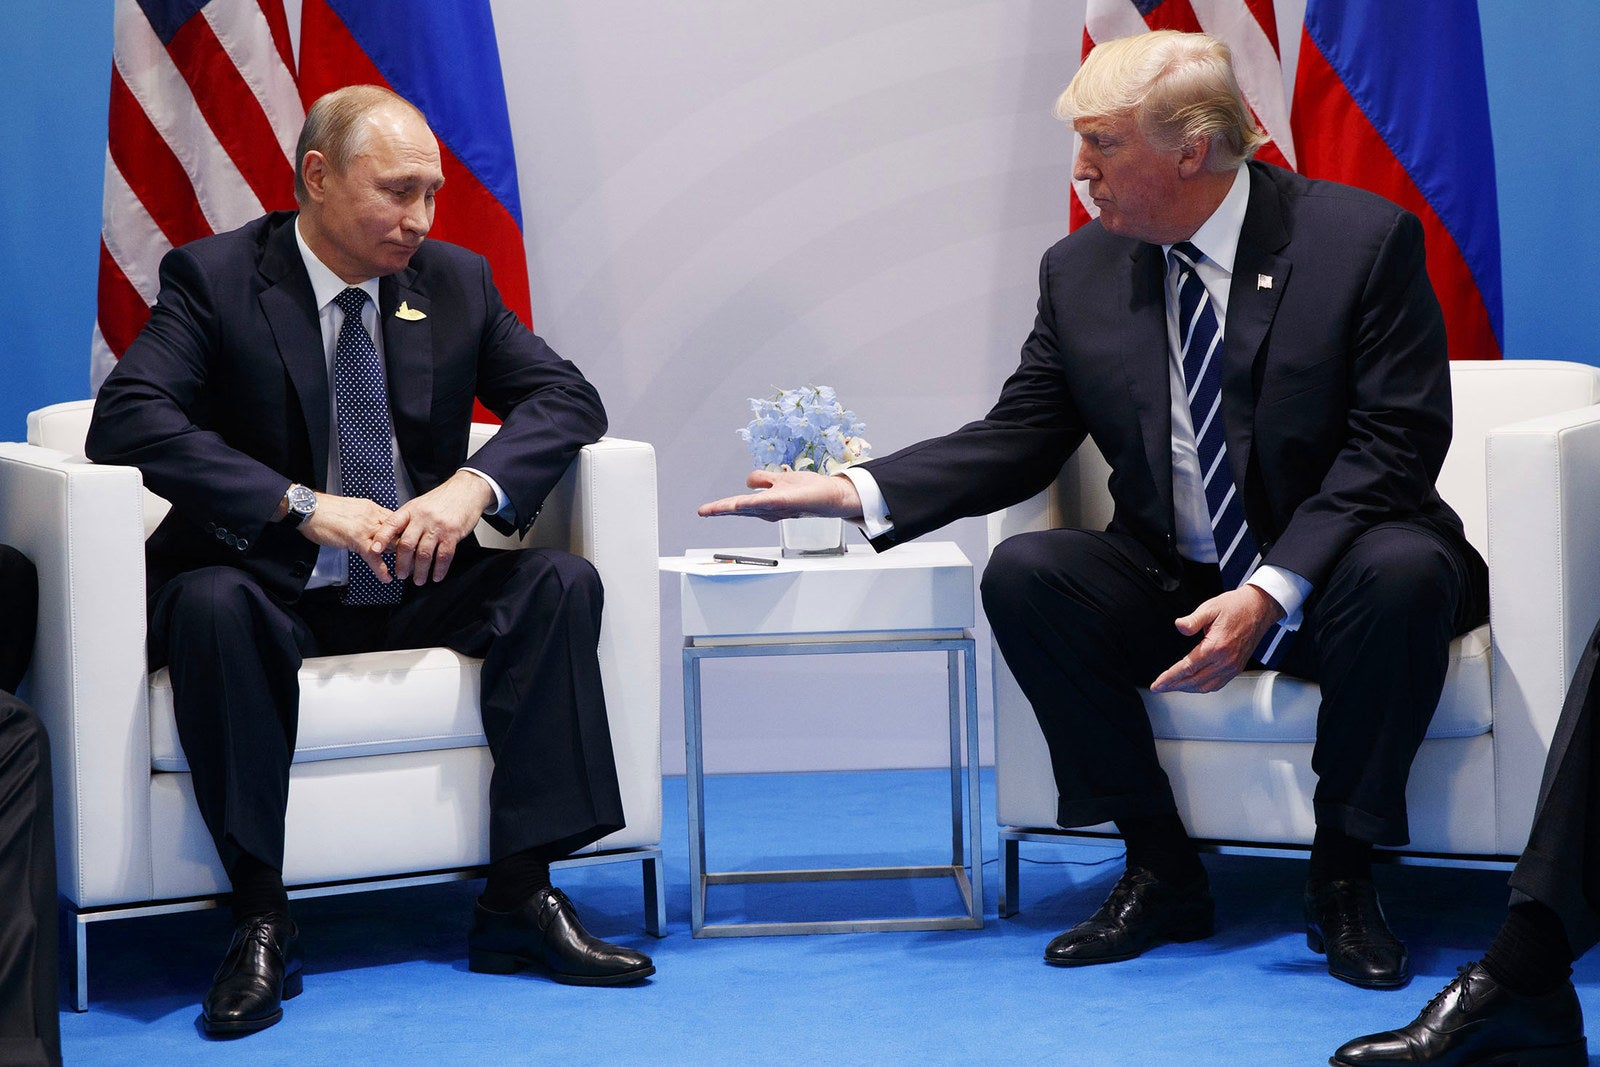 President Donald Trump meets with Russian President Vladimir Putin at the G20 Summit on July 7, in Hamburg, Germany.